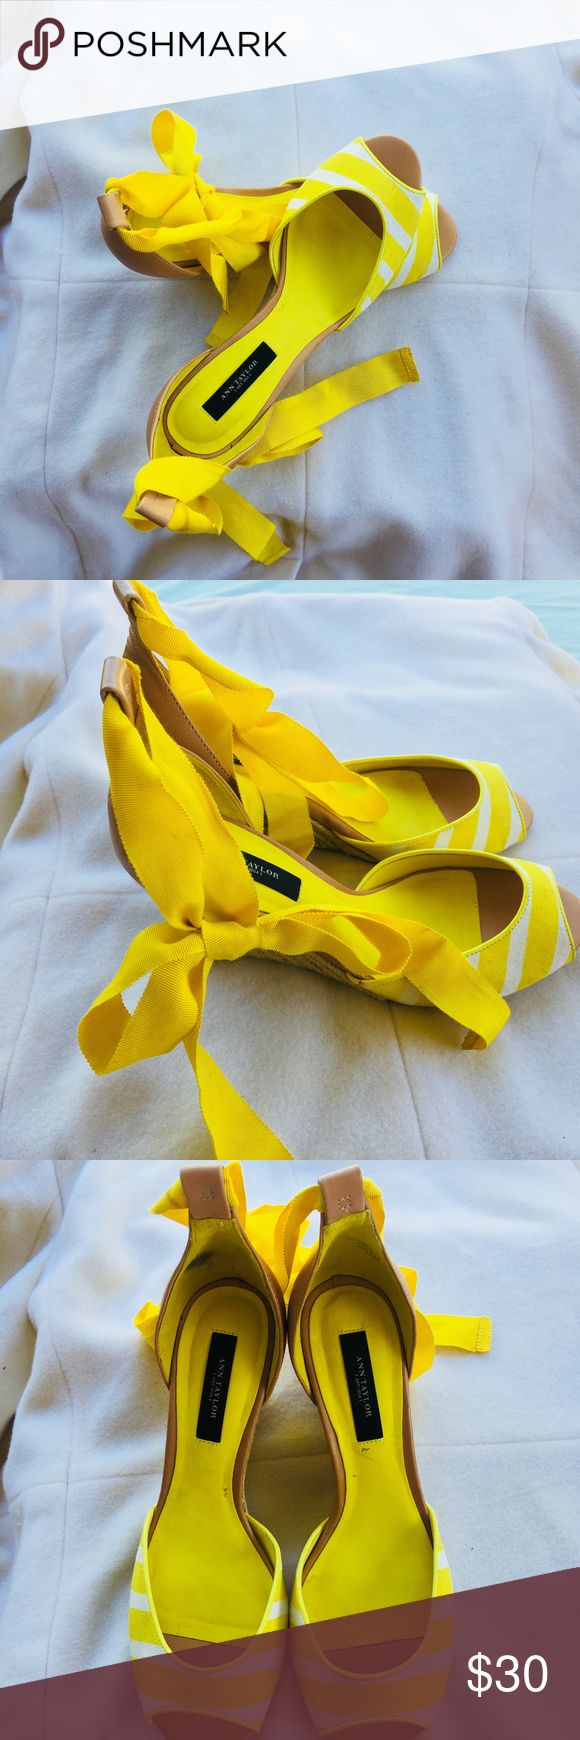 Ann Taylor Yellow Wedges Not worn. NO WEAR & Tear. Please see the small marks on the leather interior soul. Two small marks - but that's all. Clean & Cared for. Anne Taylor Shoes Sandals